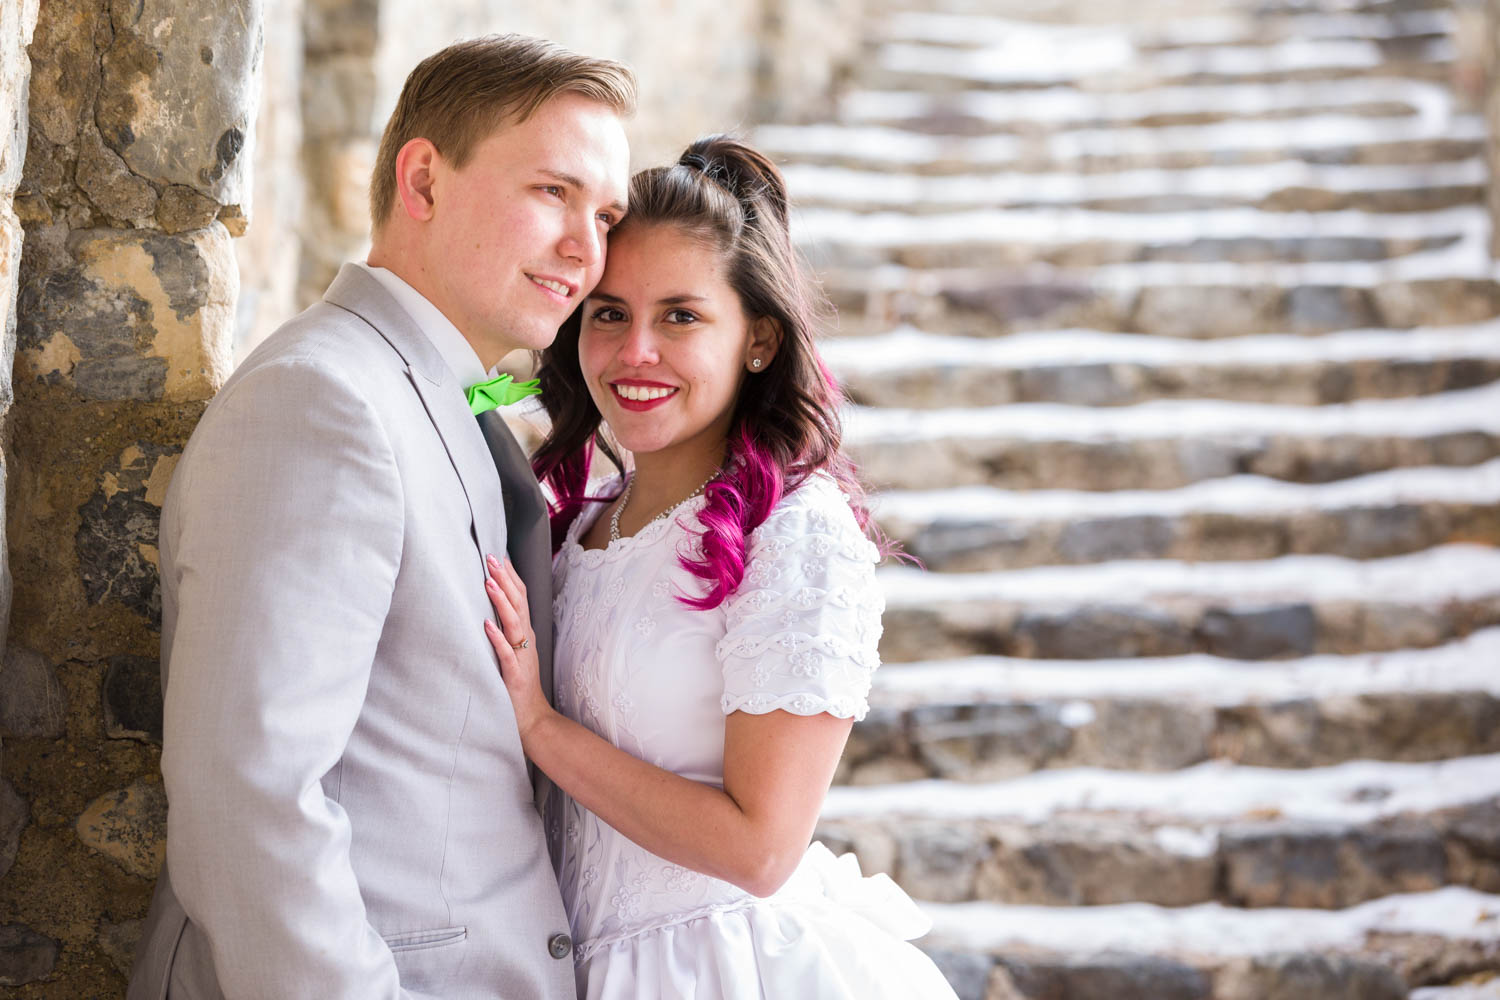 Bride and groom at the Provo Castle